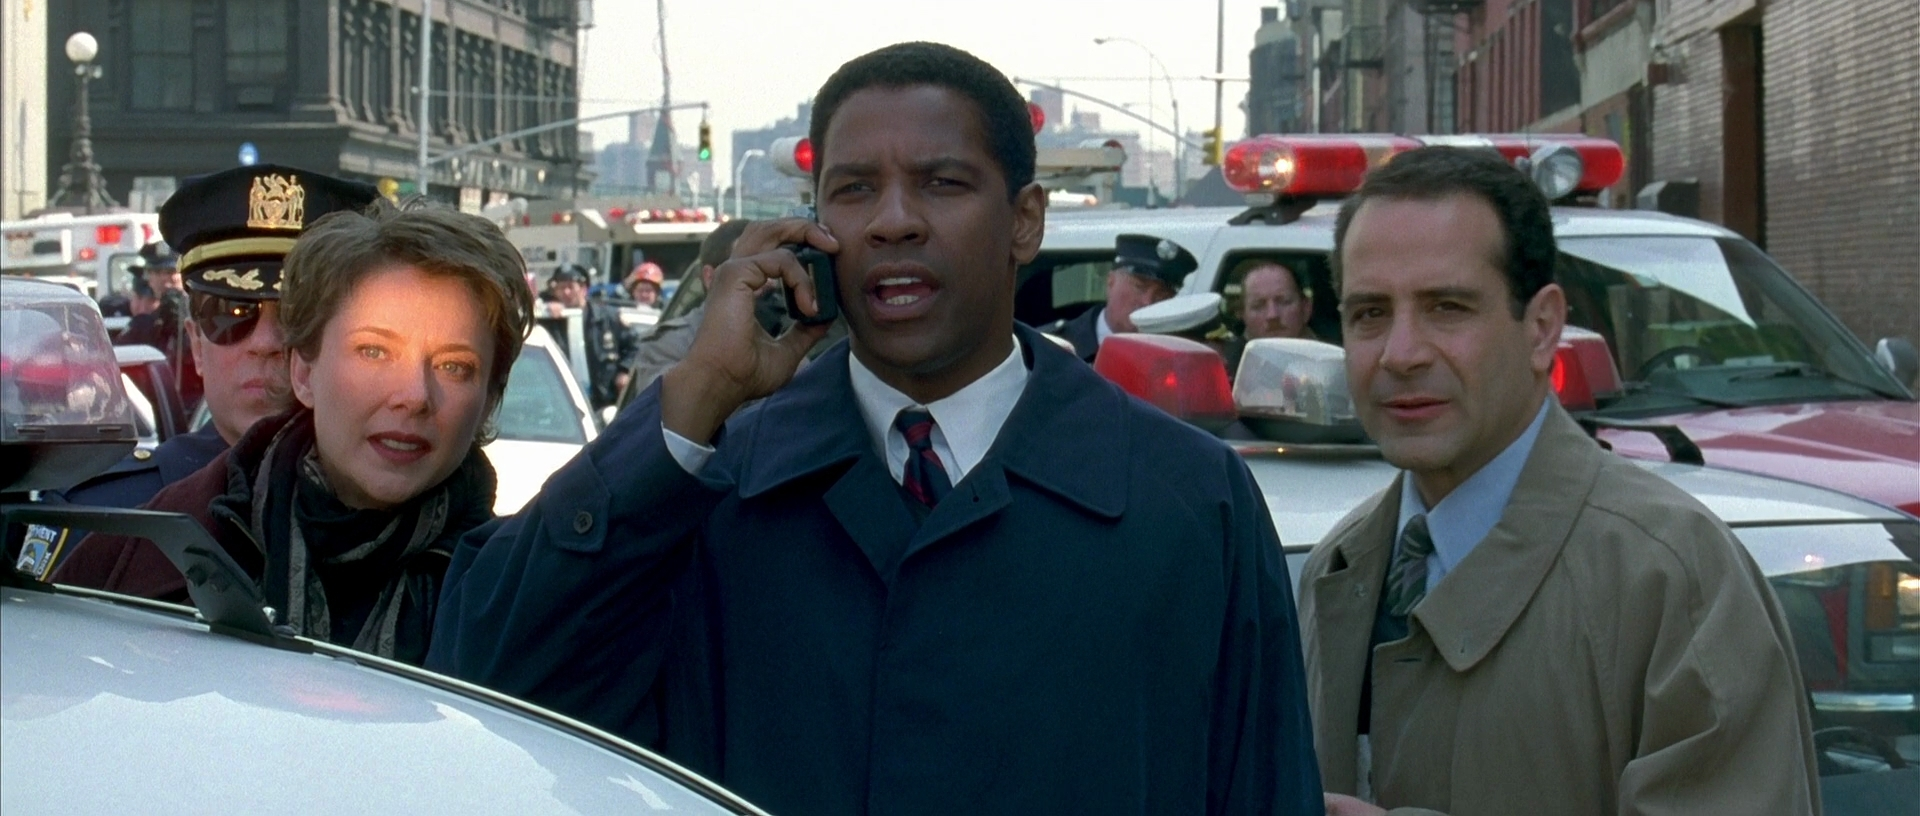 Annette Bening, Denzel Washington and Tony Shalhoub in The Siege